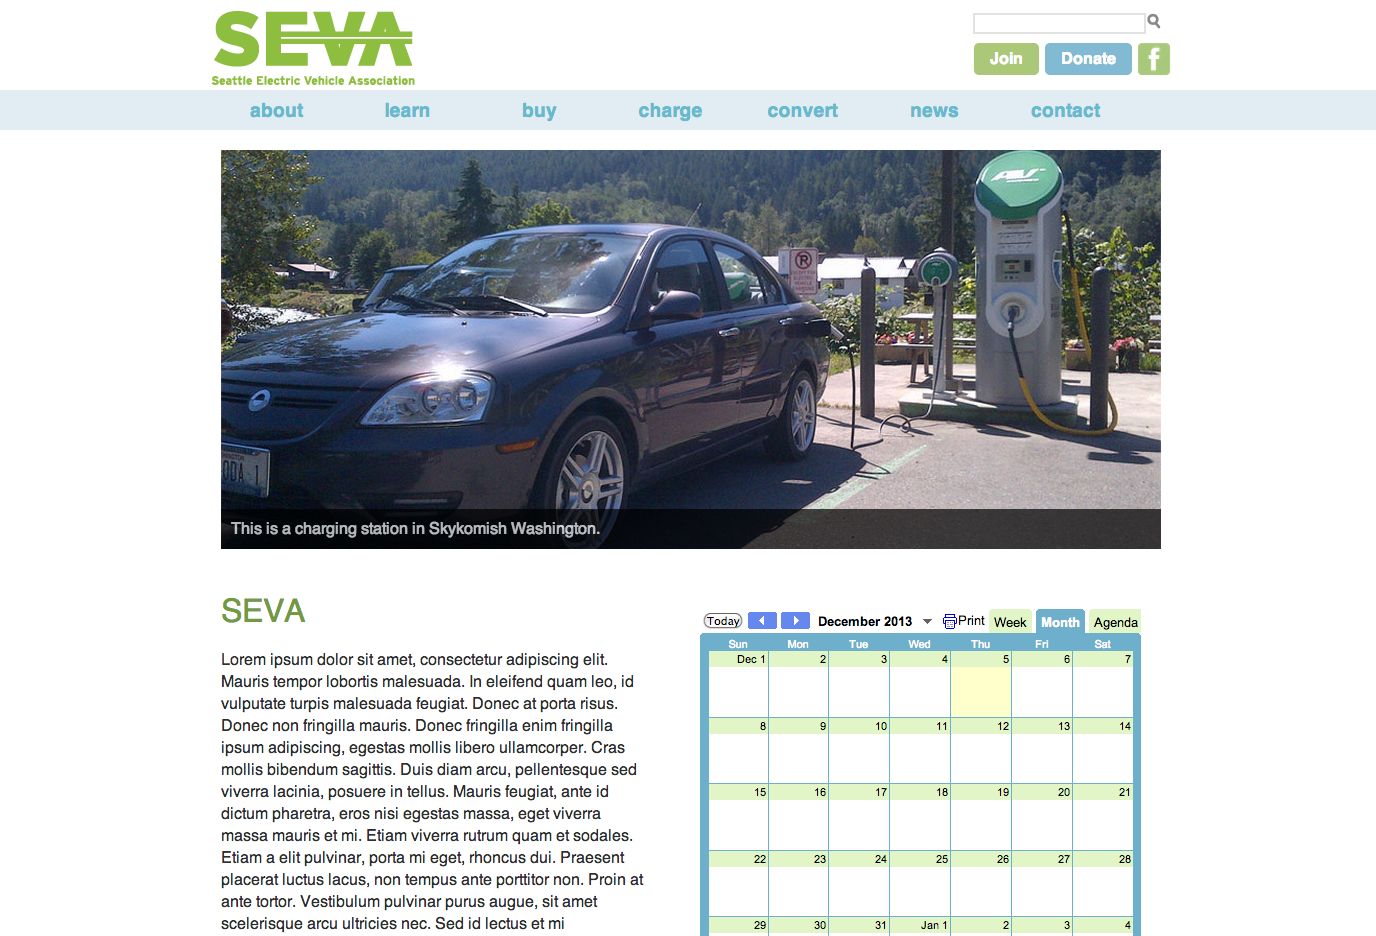 Seattle Electric Vehicle Association Site